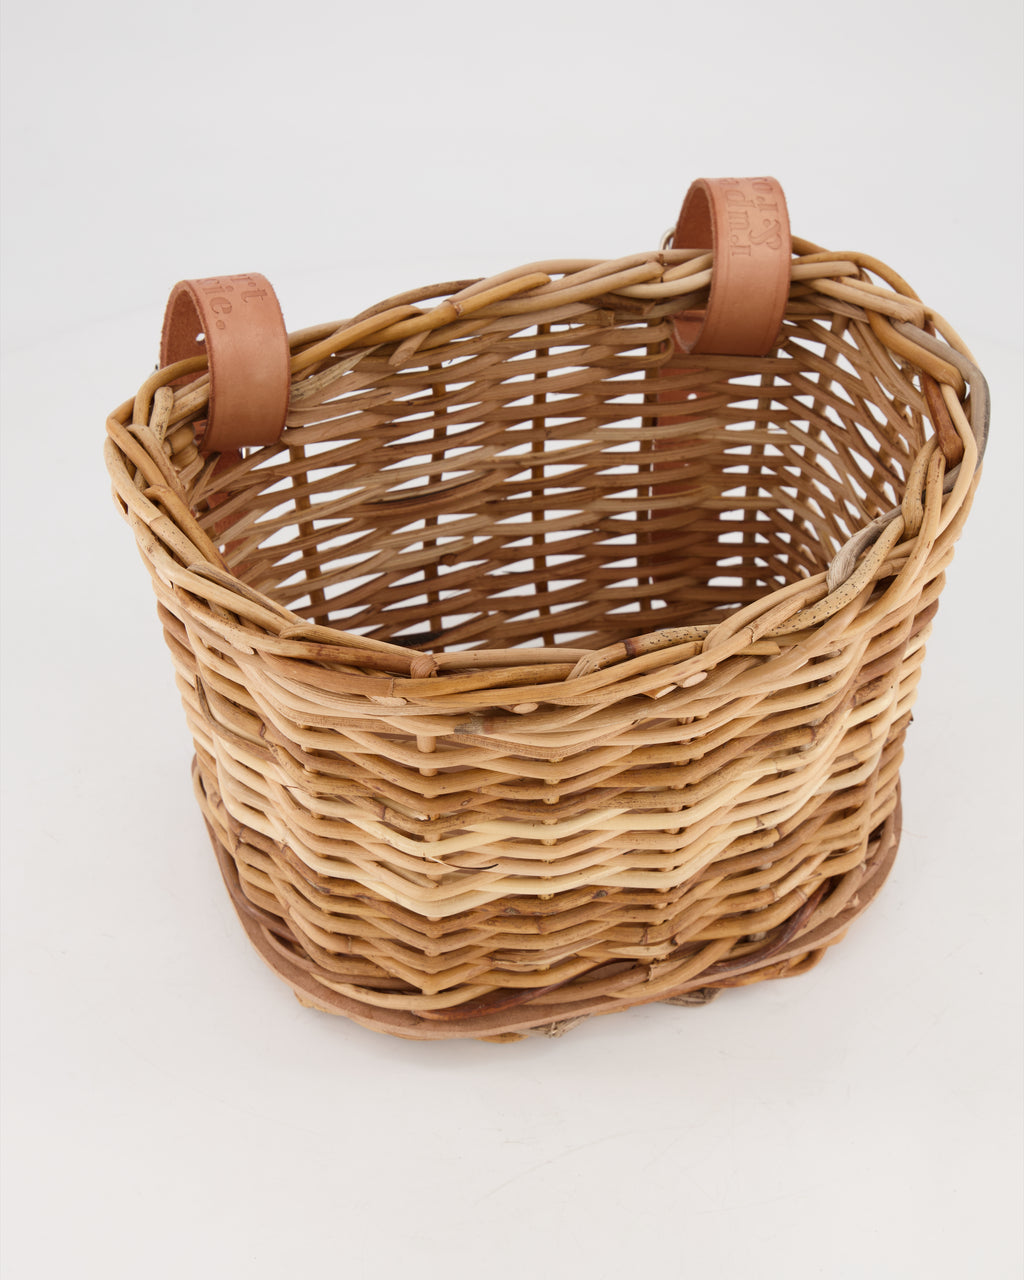 Hand-woven Bike Basket with Leather Straps (Small)